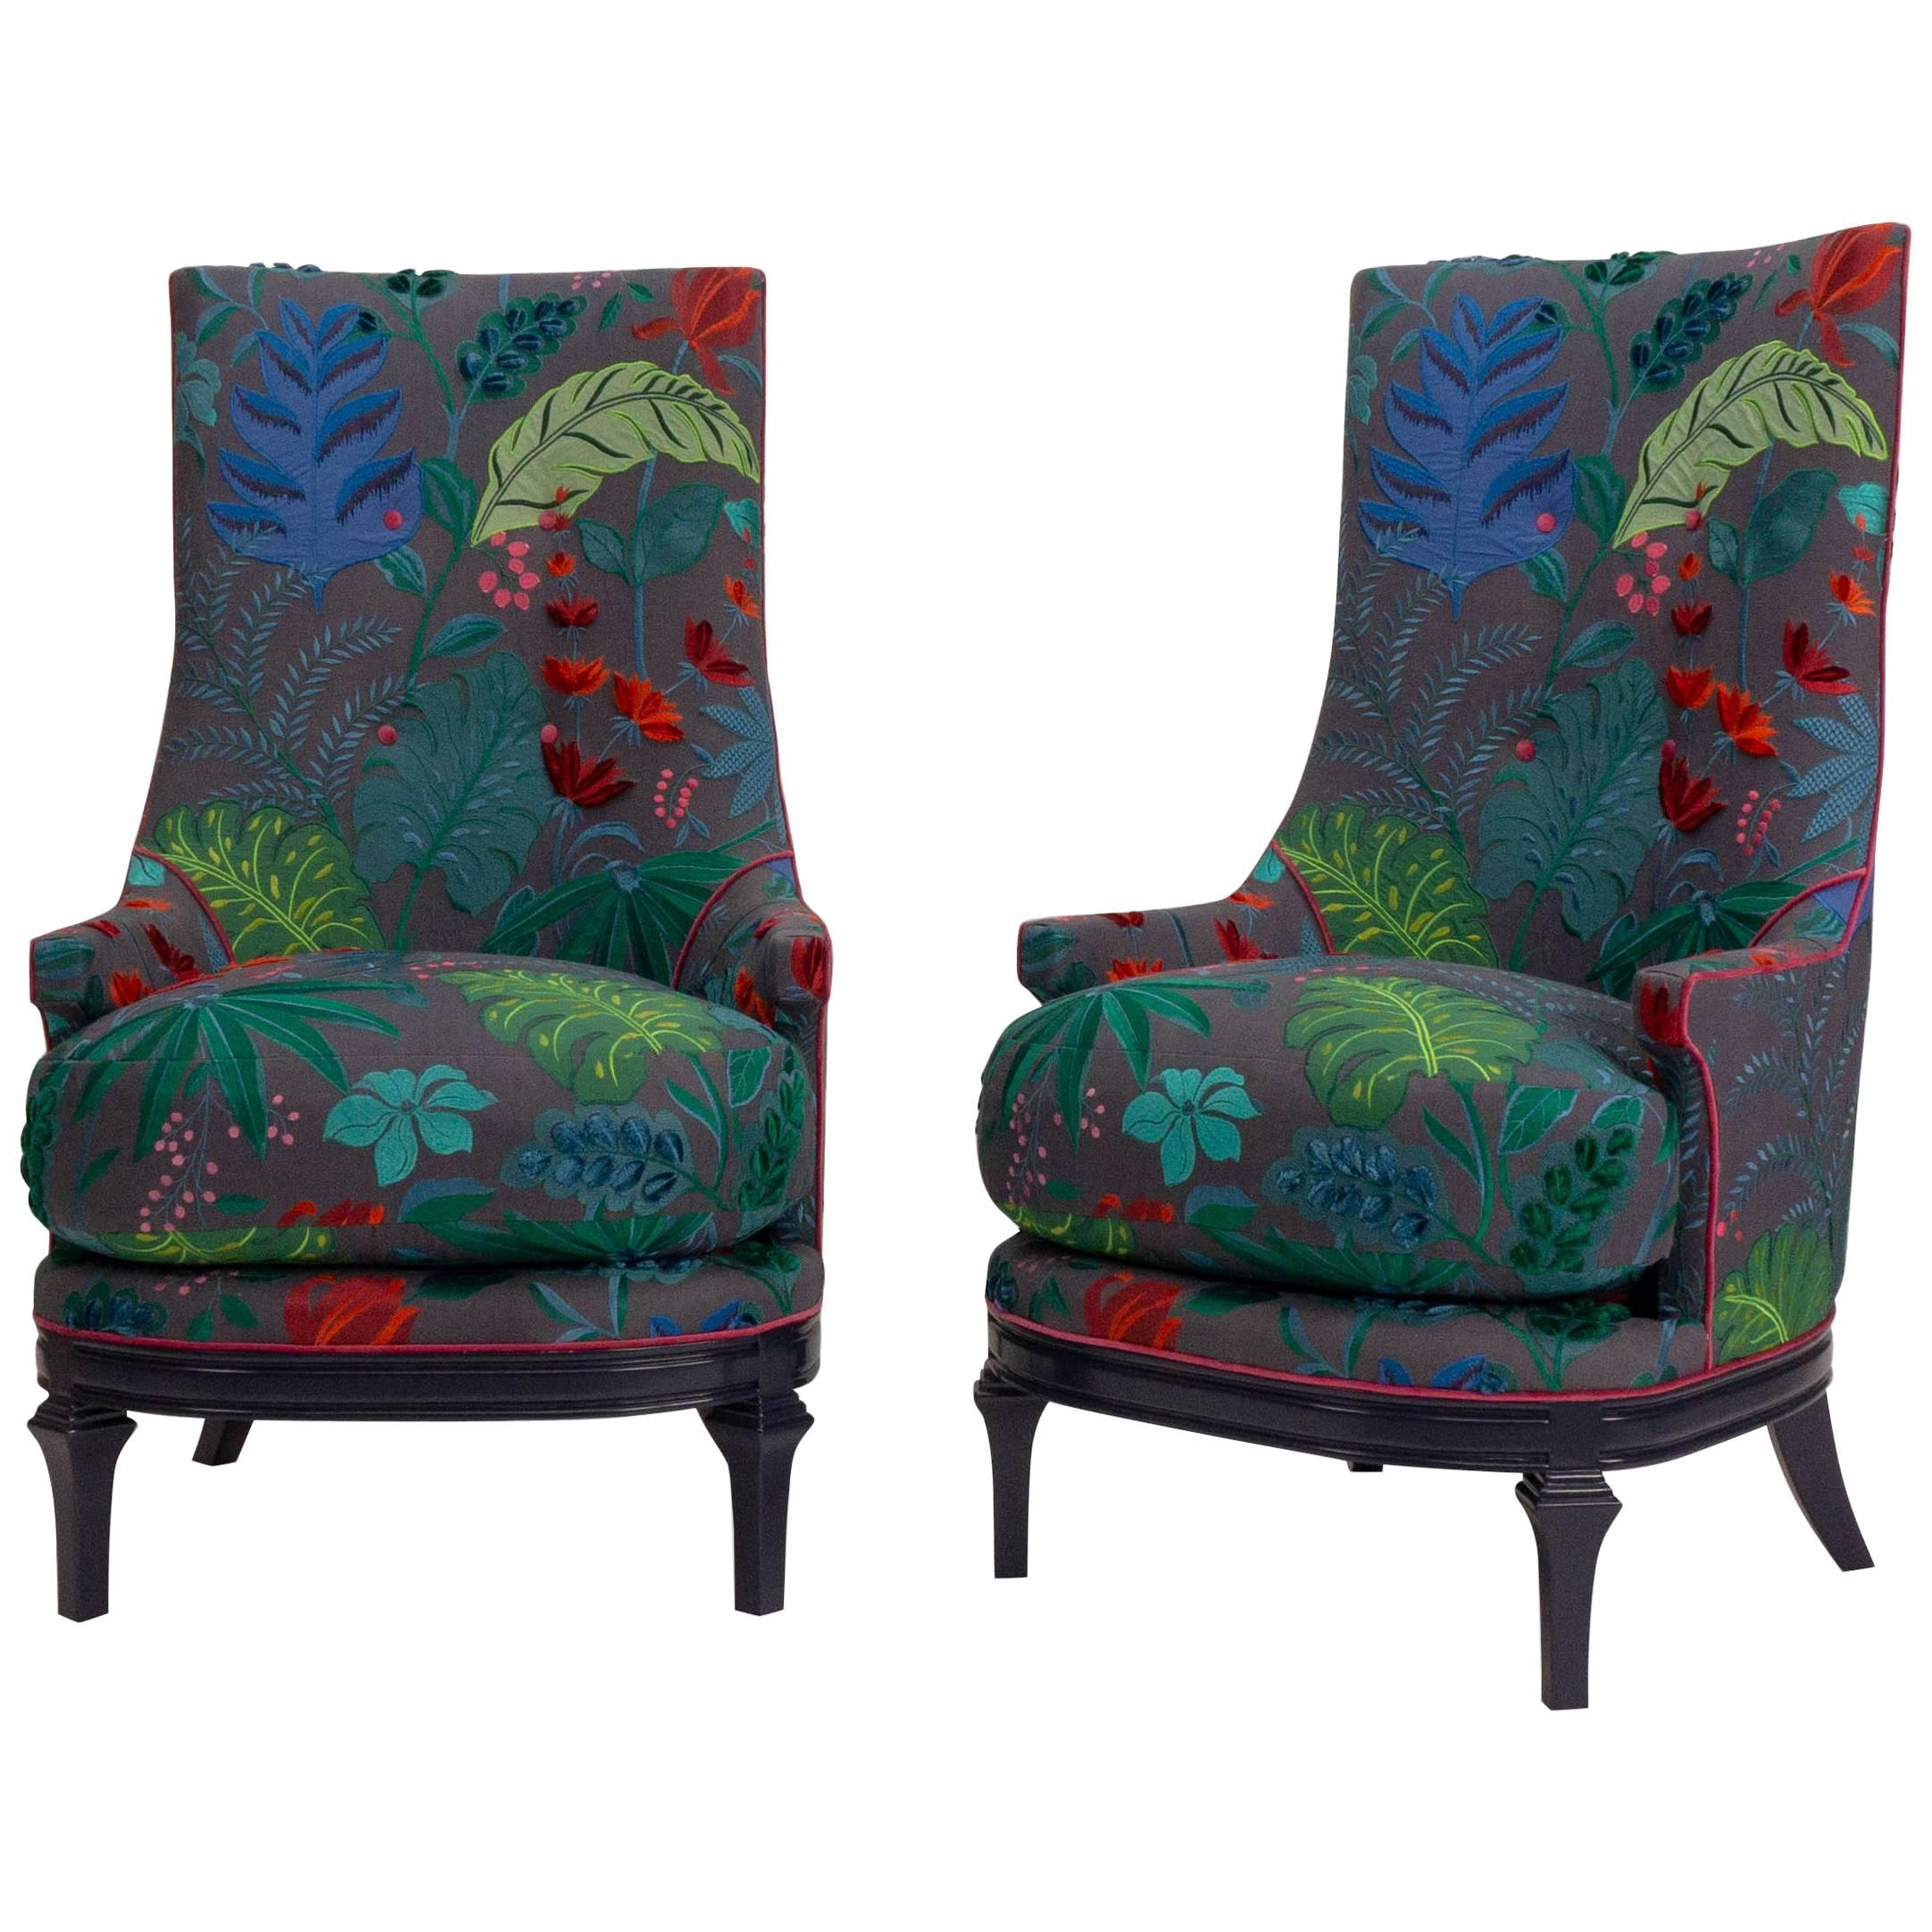 High Back Barrel Chairs in Colorful Floral Embroidered Linen